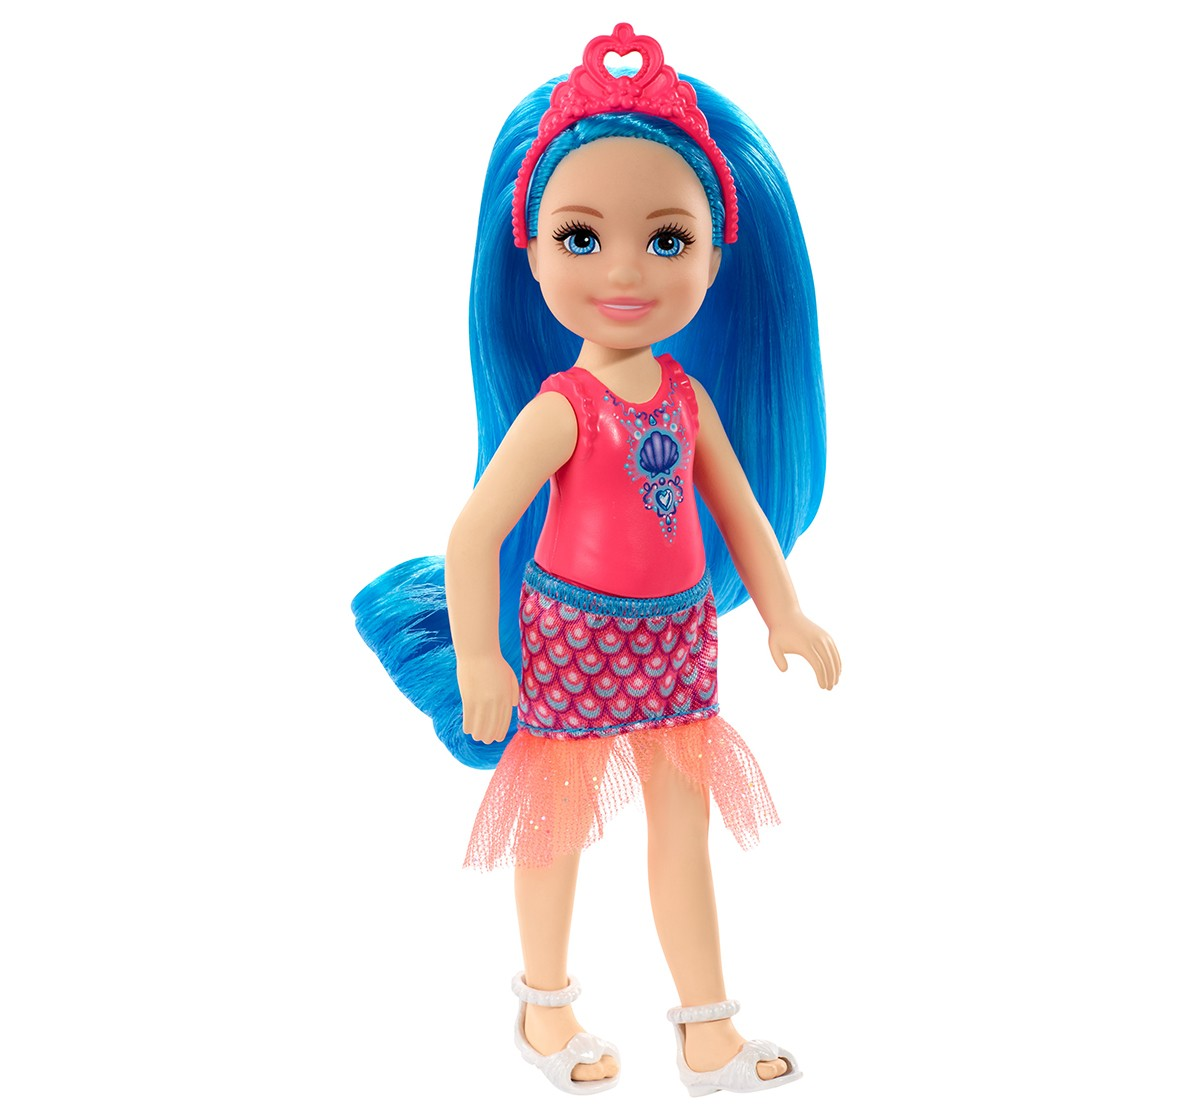 Barbie Chelsea Fantasy Dolls & Accessories for Girls age 3Y+ (Assorted)